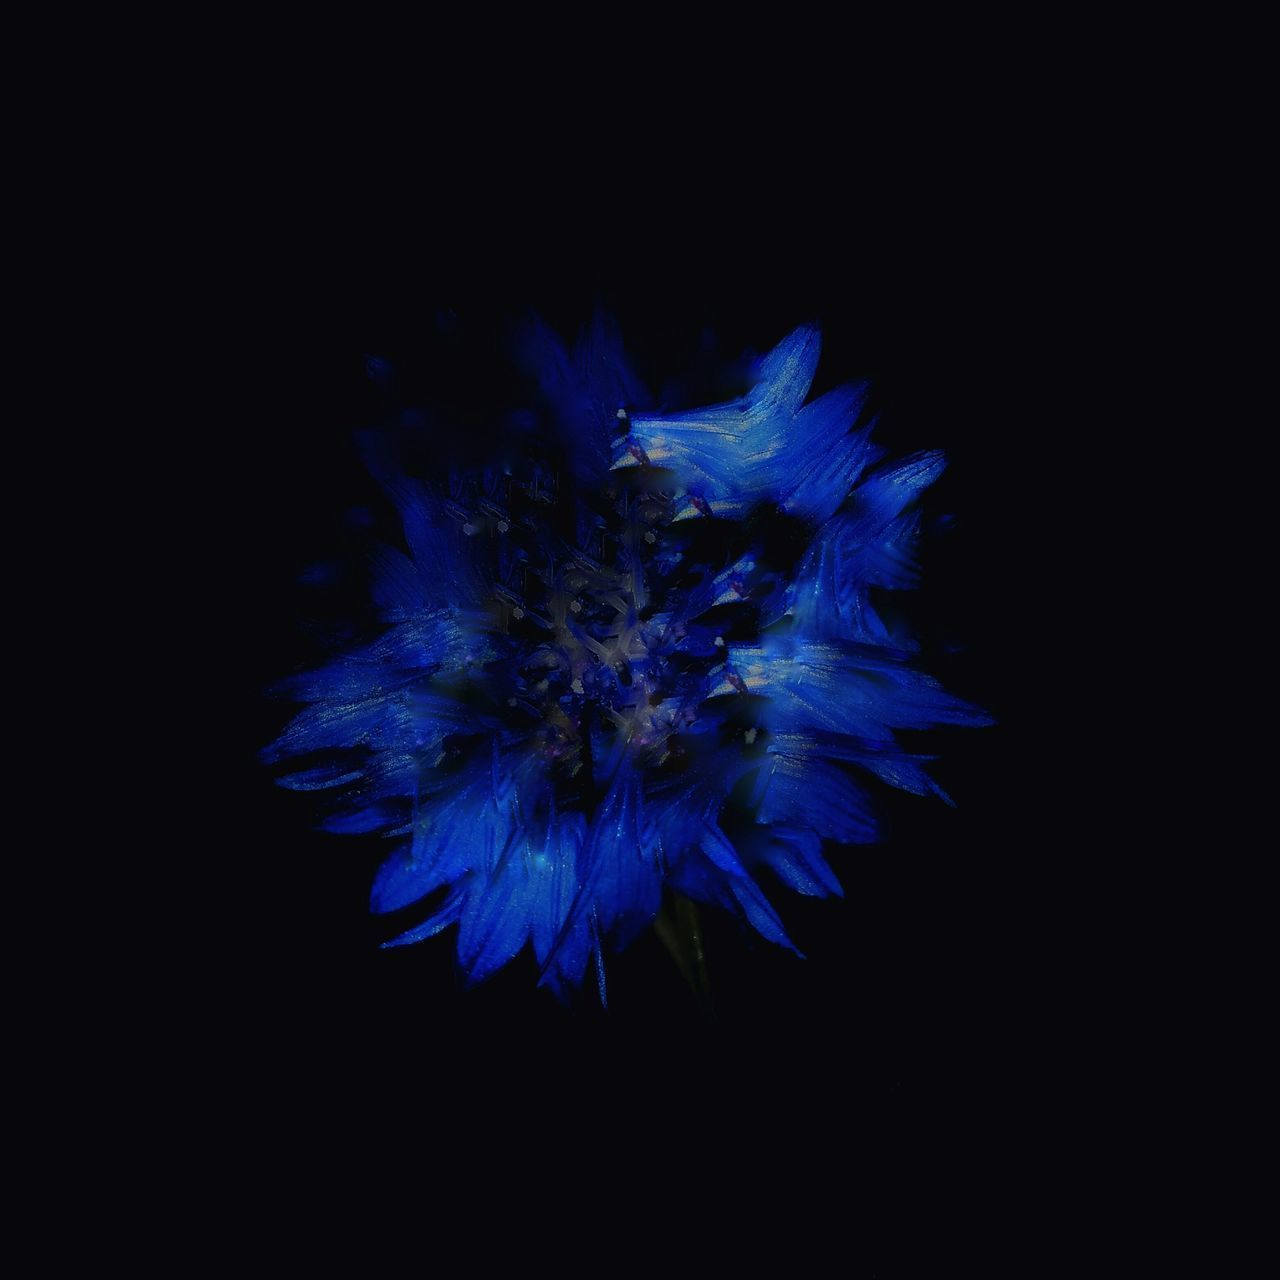 Blue Studio Shot Exploding Black Background No People Night Firework Display Firework - Man Made Object Sky Beauty In Nature Close-up Outdoors Astronomy EyeEmNewHere